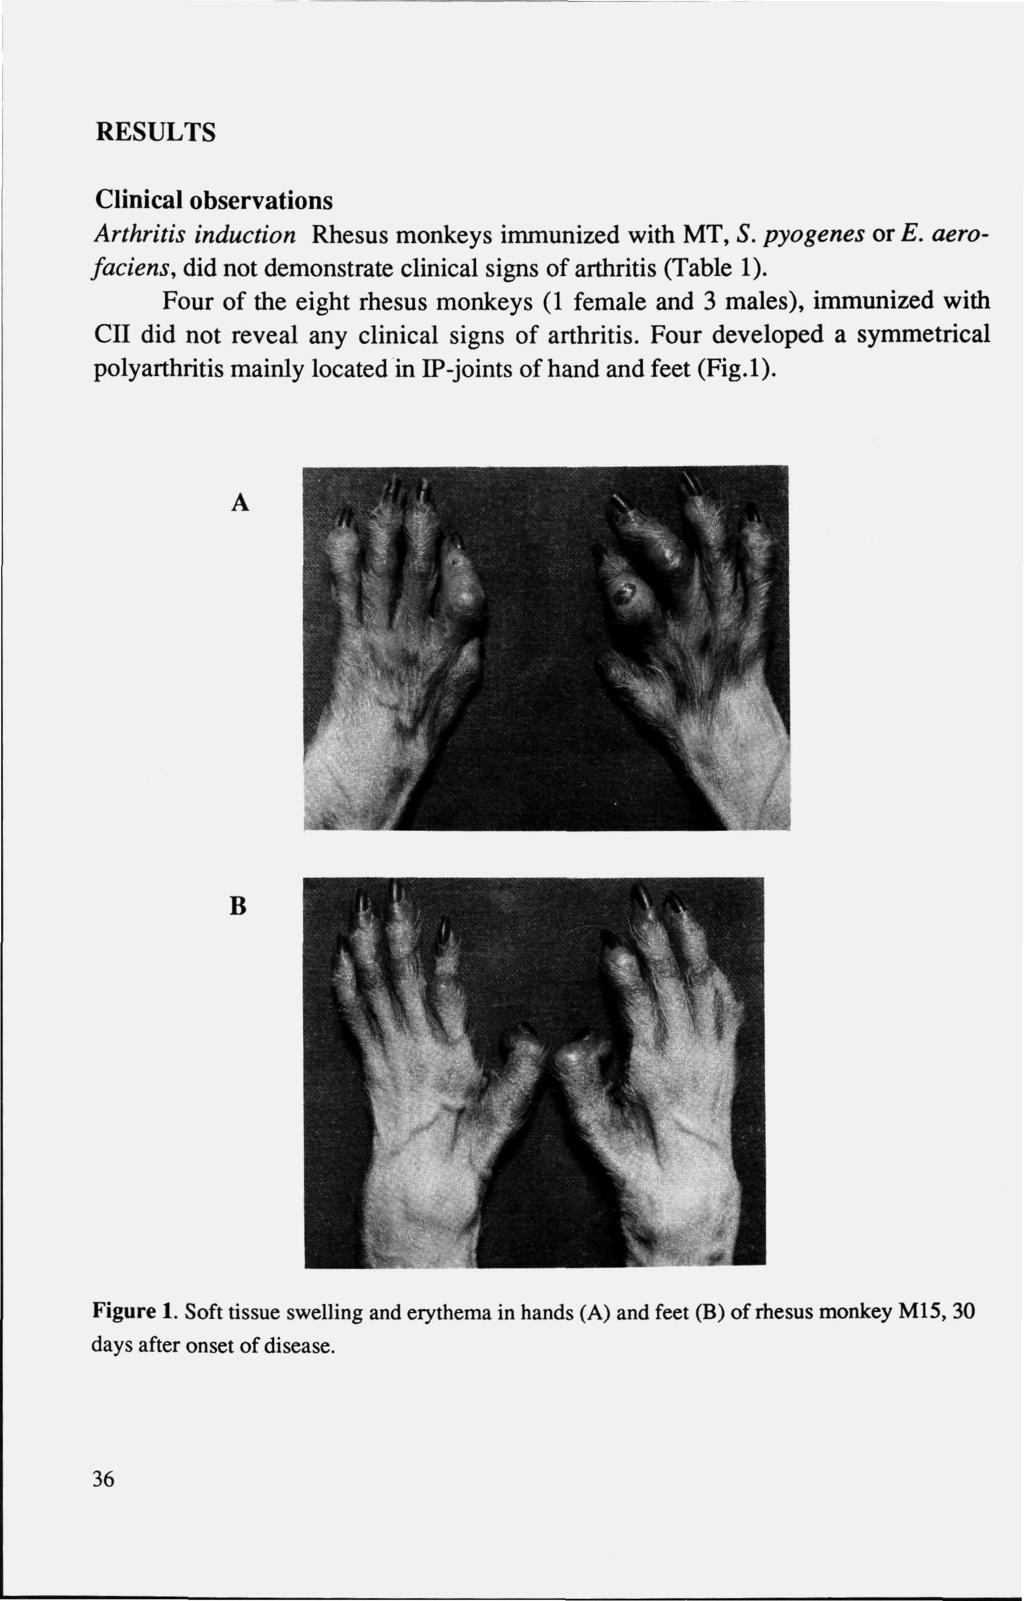 RESULTS Clinical observations Arthritis induction Rhesus monkeys immunized with MT, 5. pyogenes or E. aerofaciens, did not demonstrate clinical signs of arthritis (Table ).